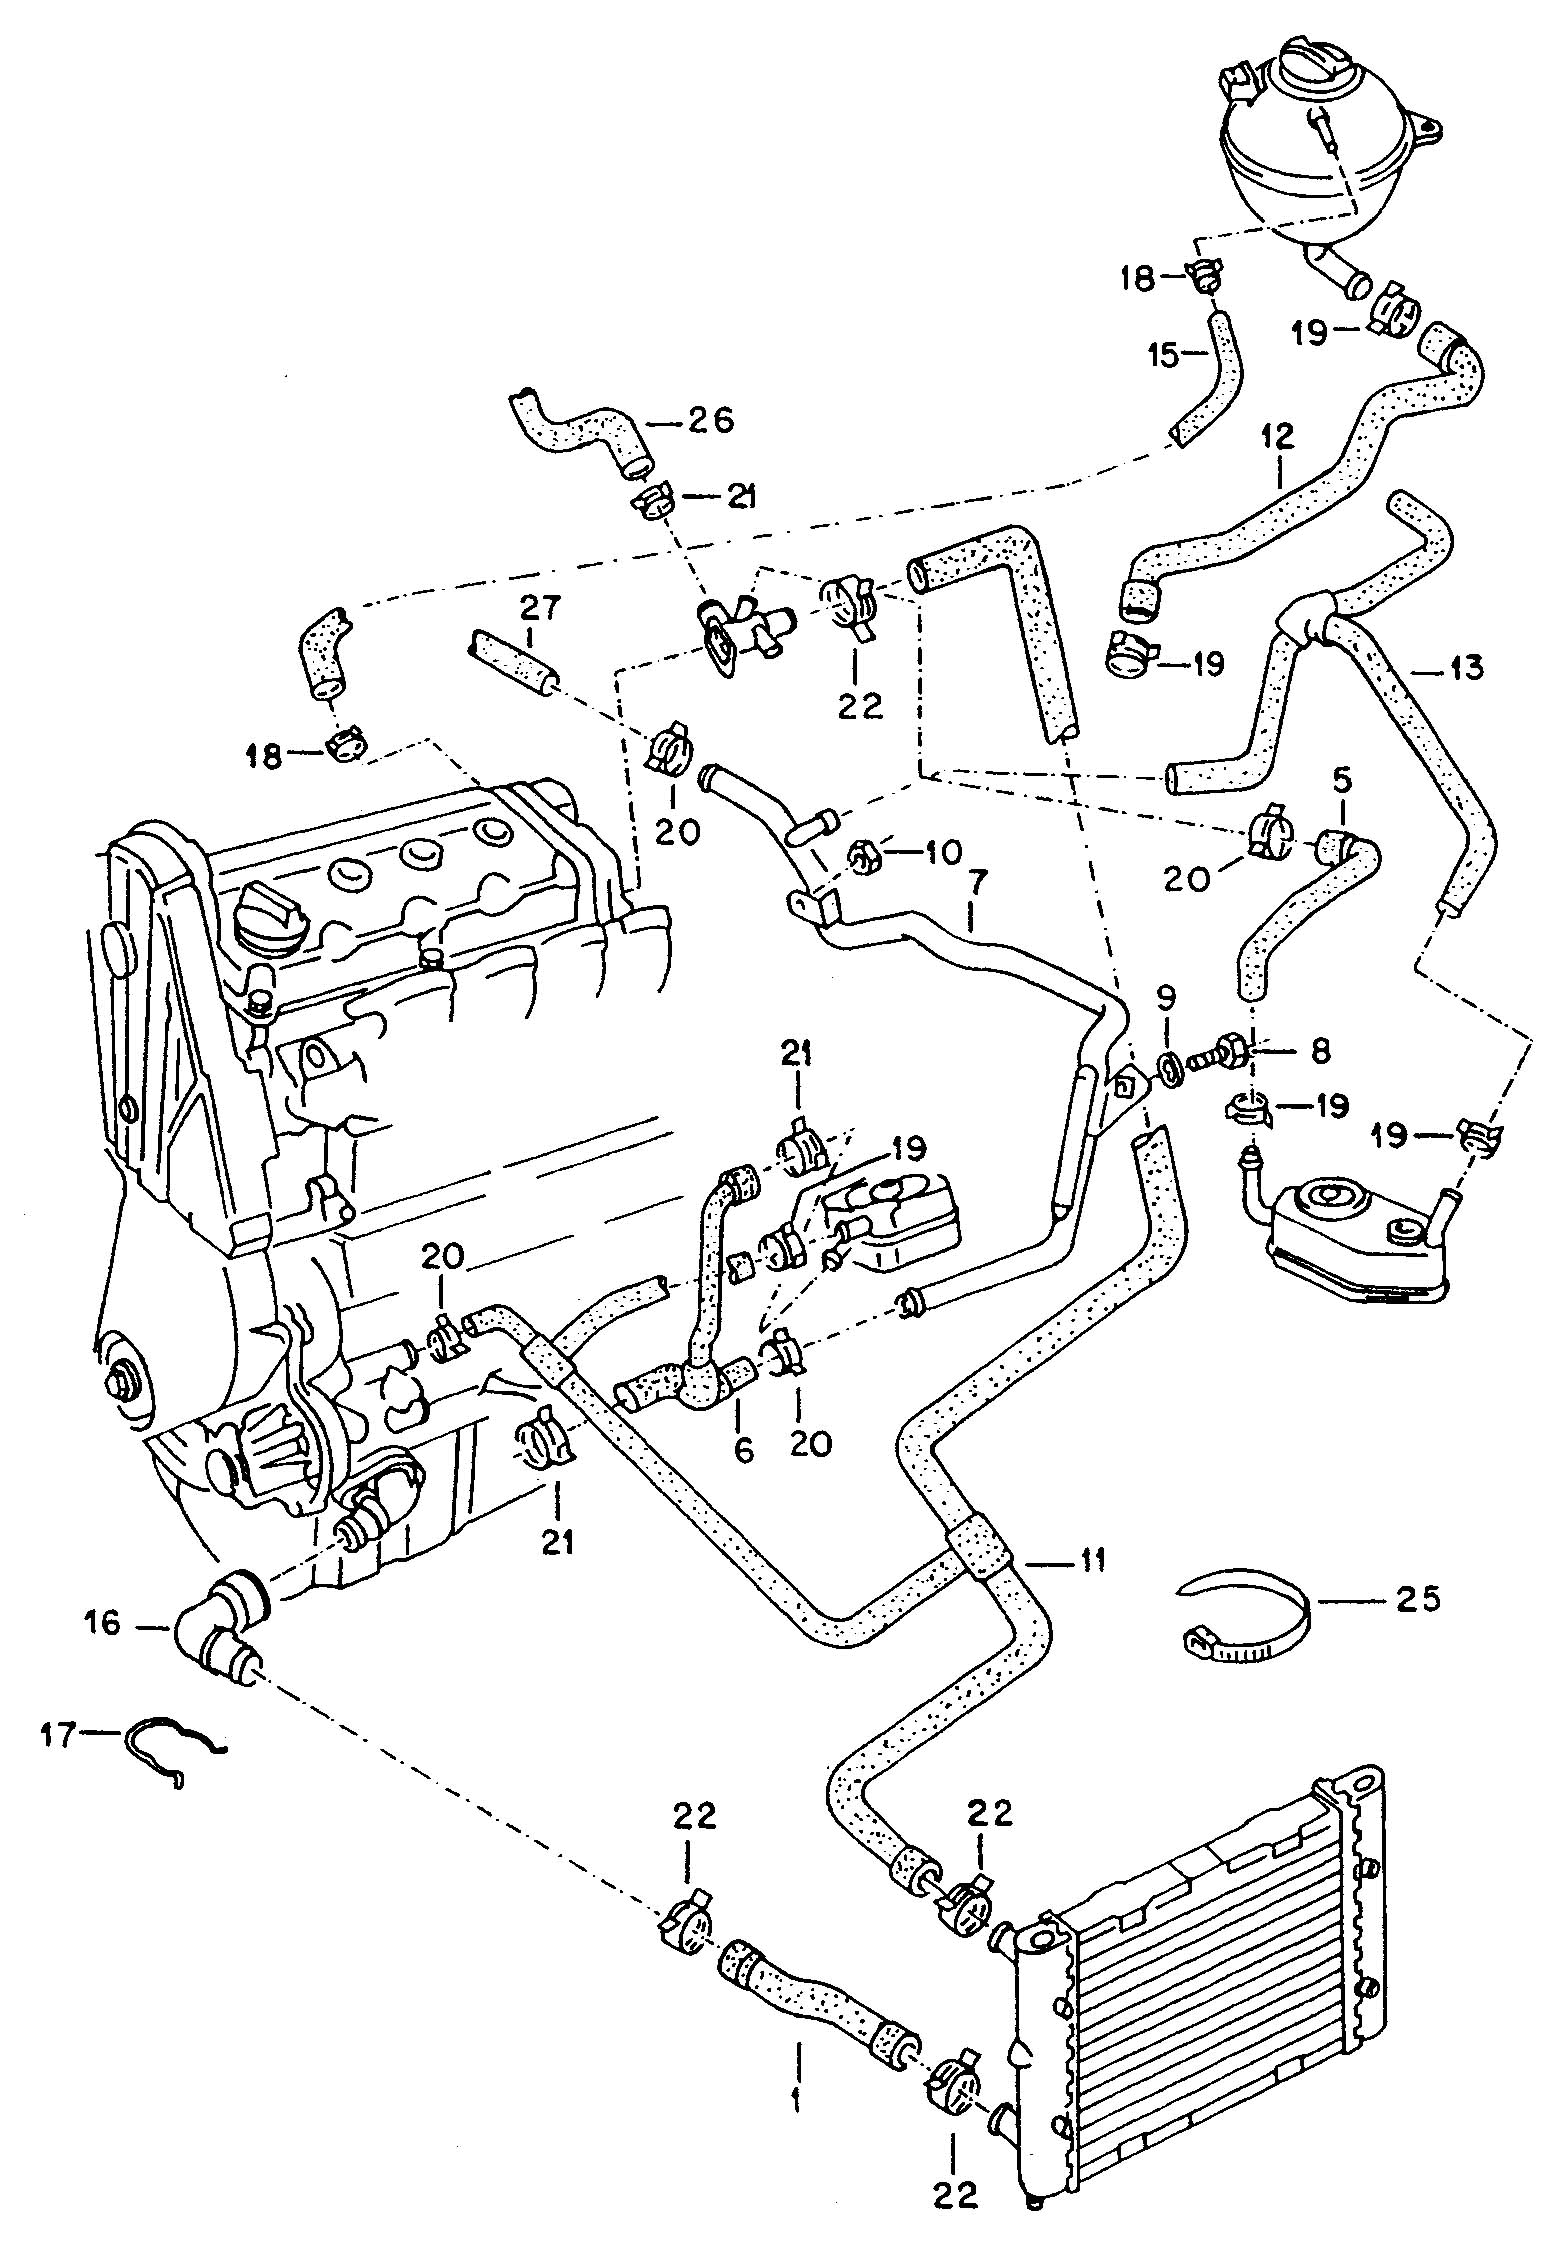 Vw Jetta Cooling System Diagram Pictures To Pin On